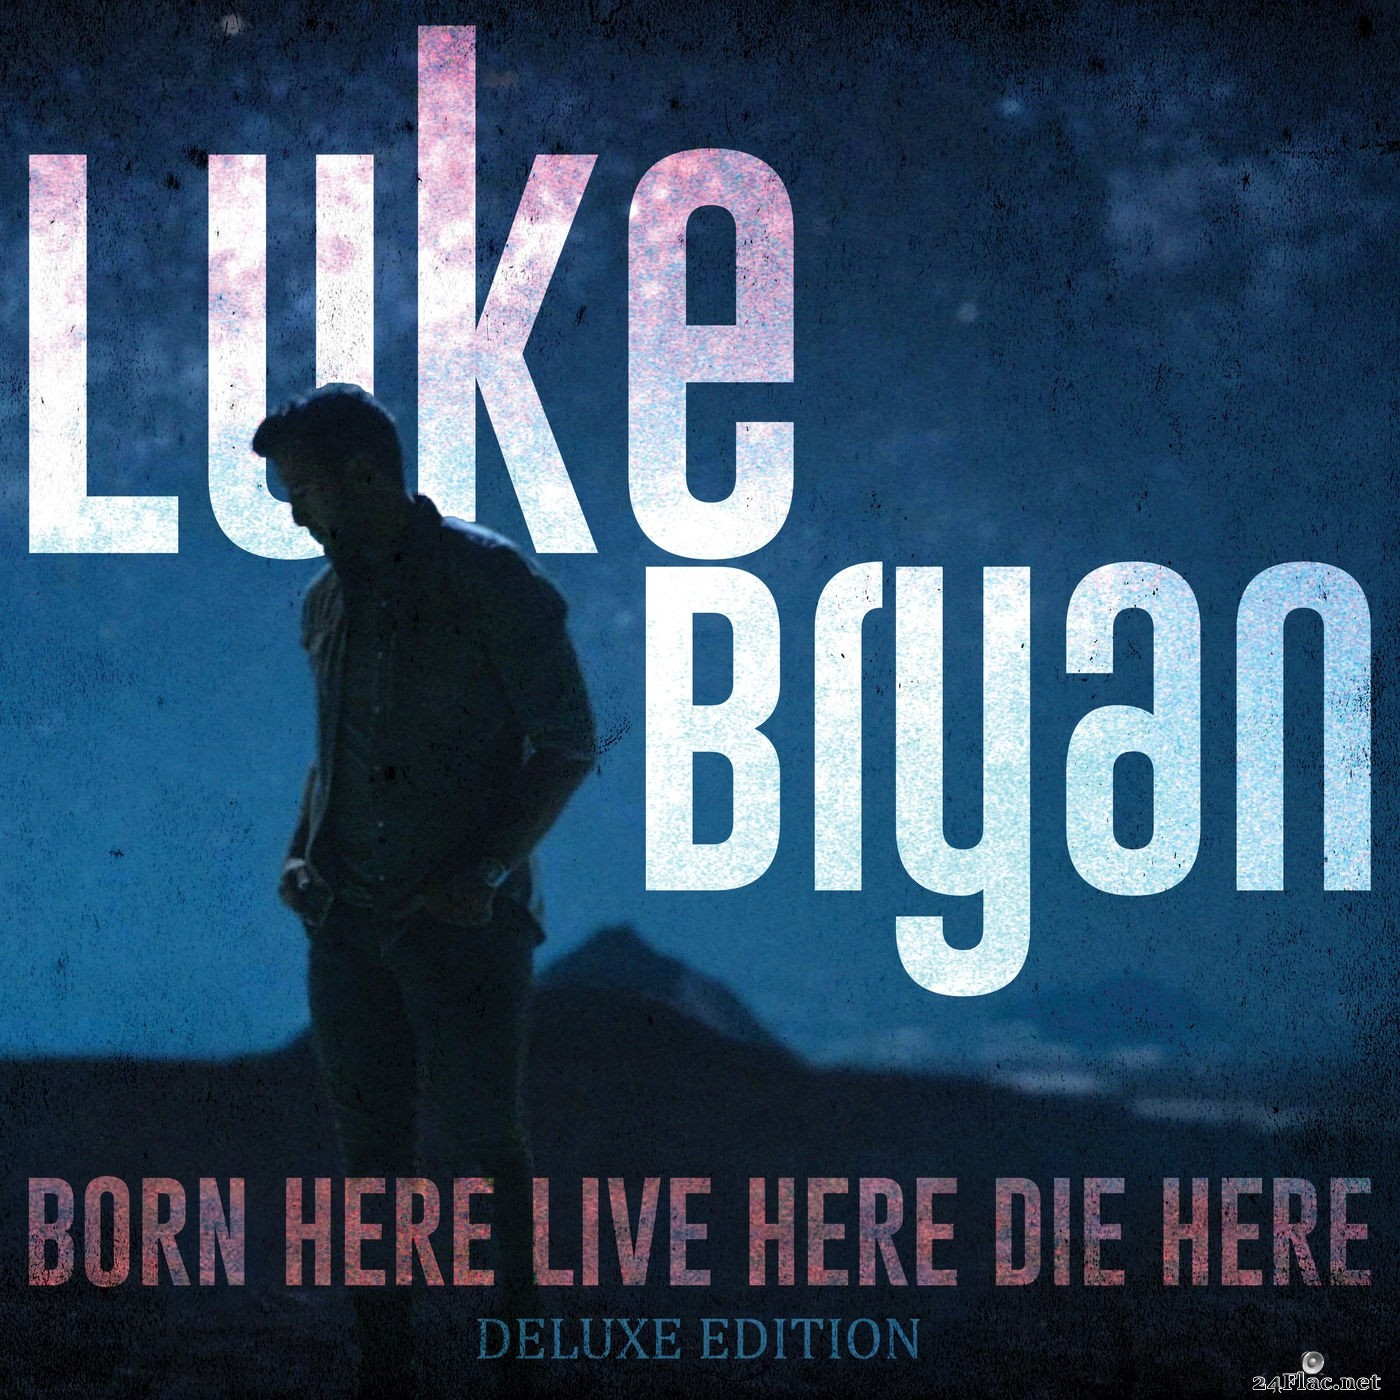 Luke Bryan - Born Here Live Here Die Here (Deluxe Edition) (2021) Hi-Res